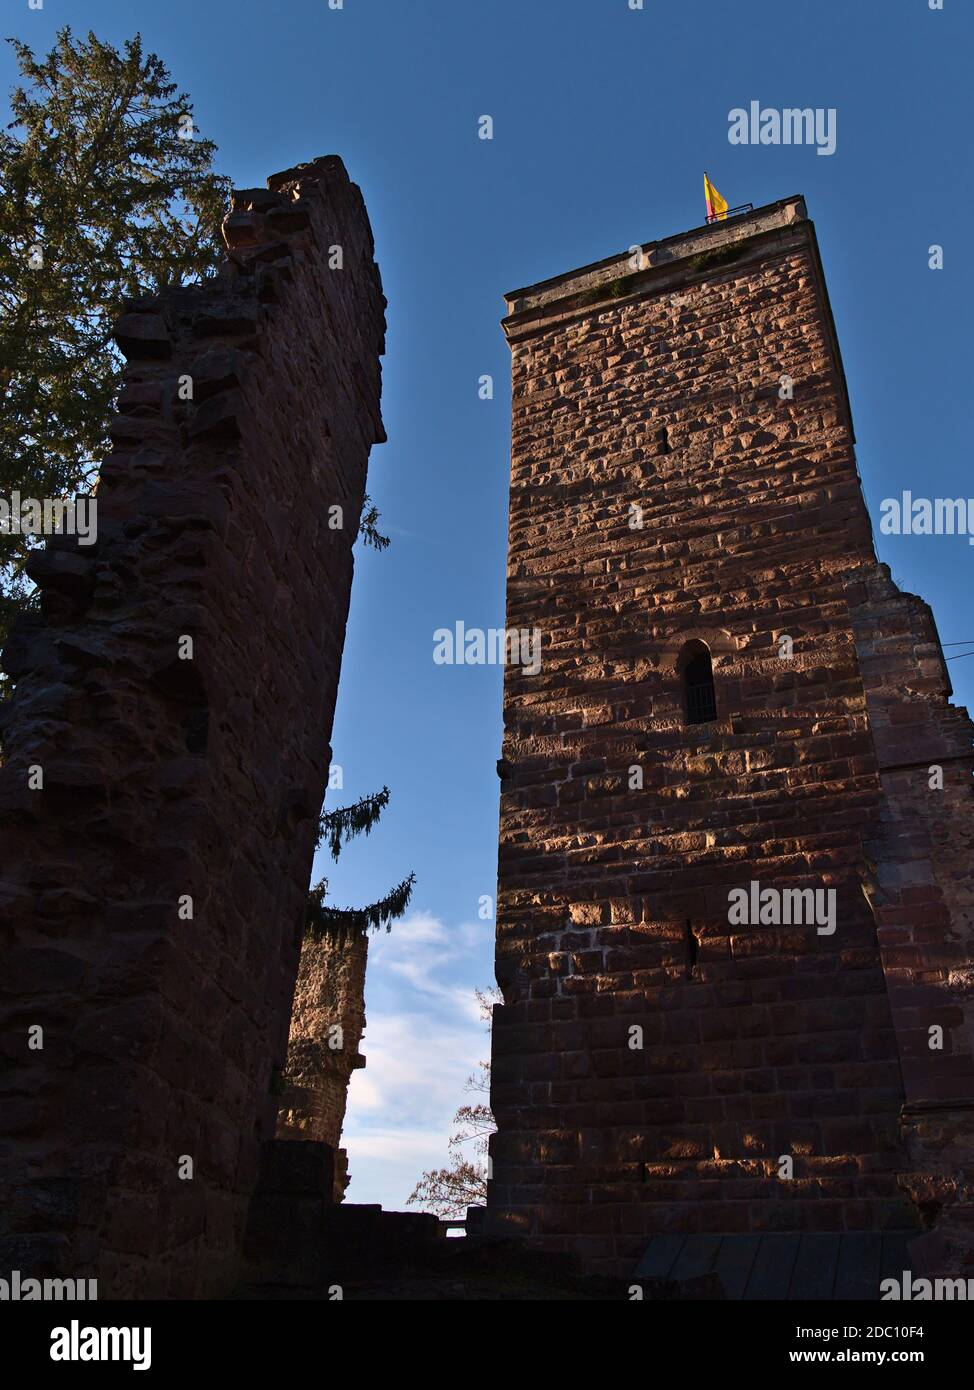 Reconstructed bergfried tower of ruined castle Burg Zavelstein, today accessible as observation tower, above Teinach valley in Black Forest. Stock Photo